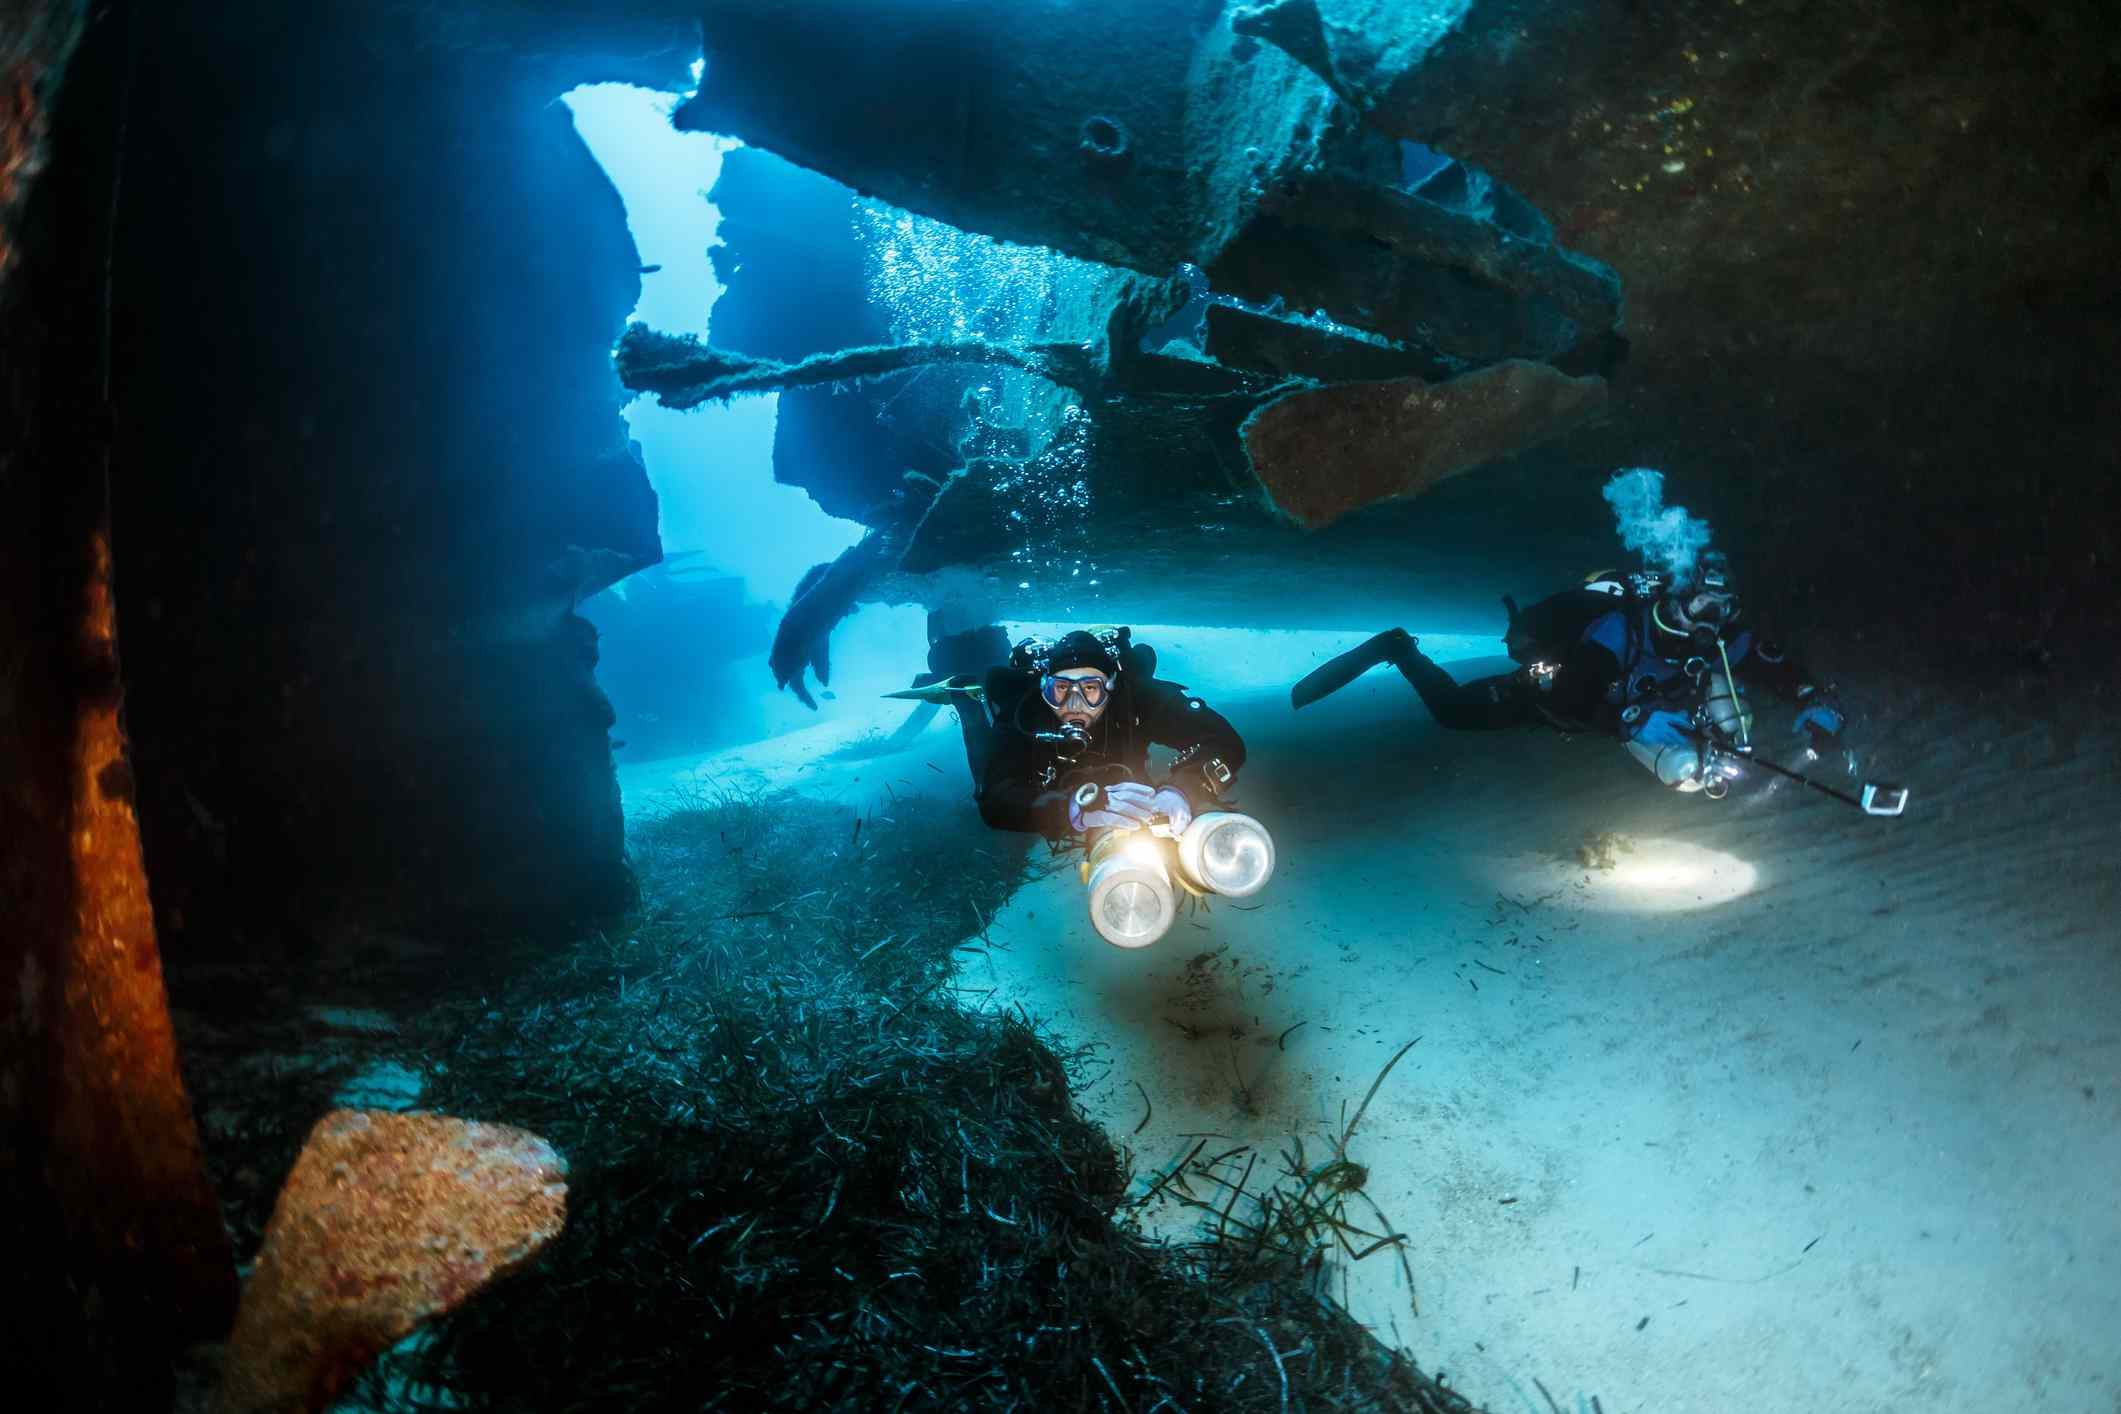 Two scuba divers with bright lights swimming through the wreck Um El Faroud in Malta